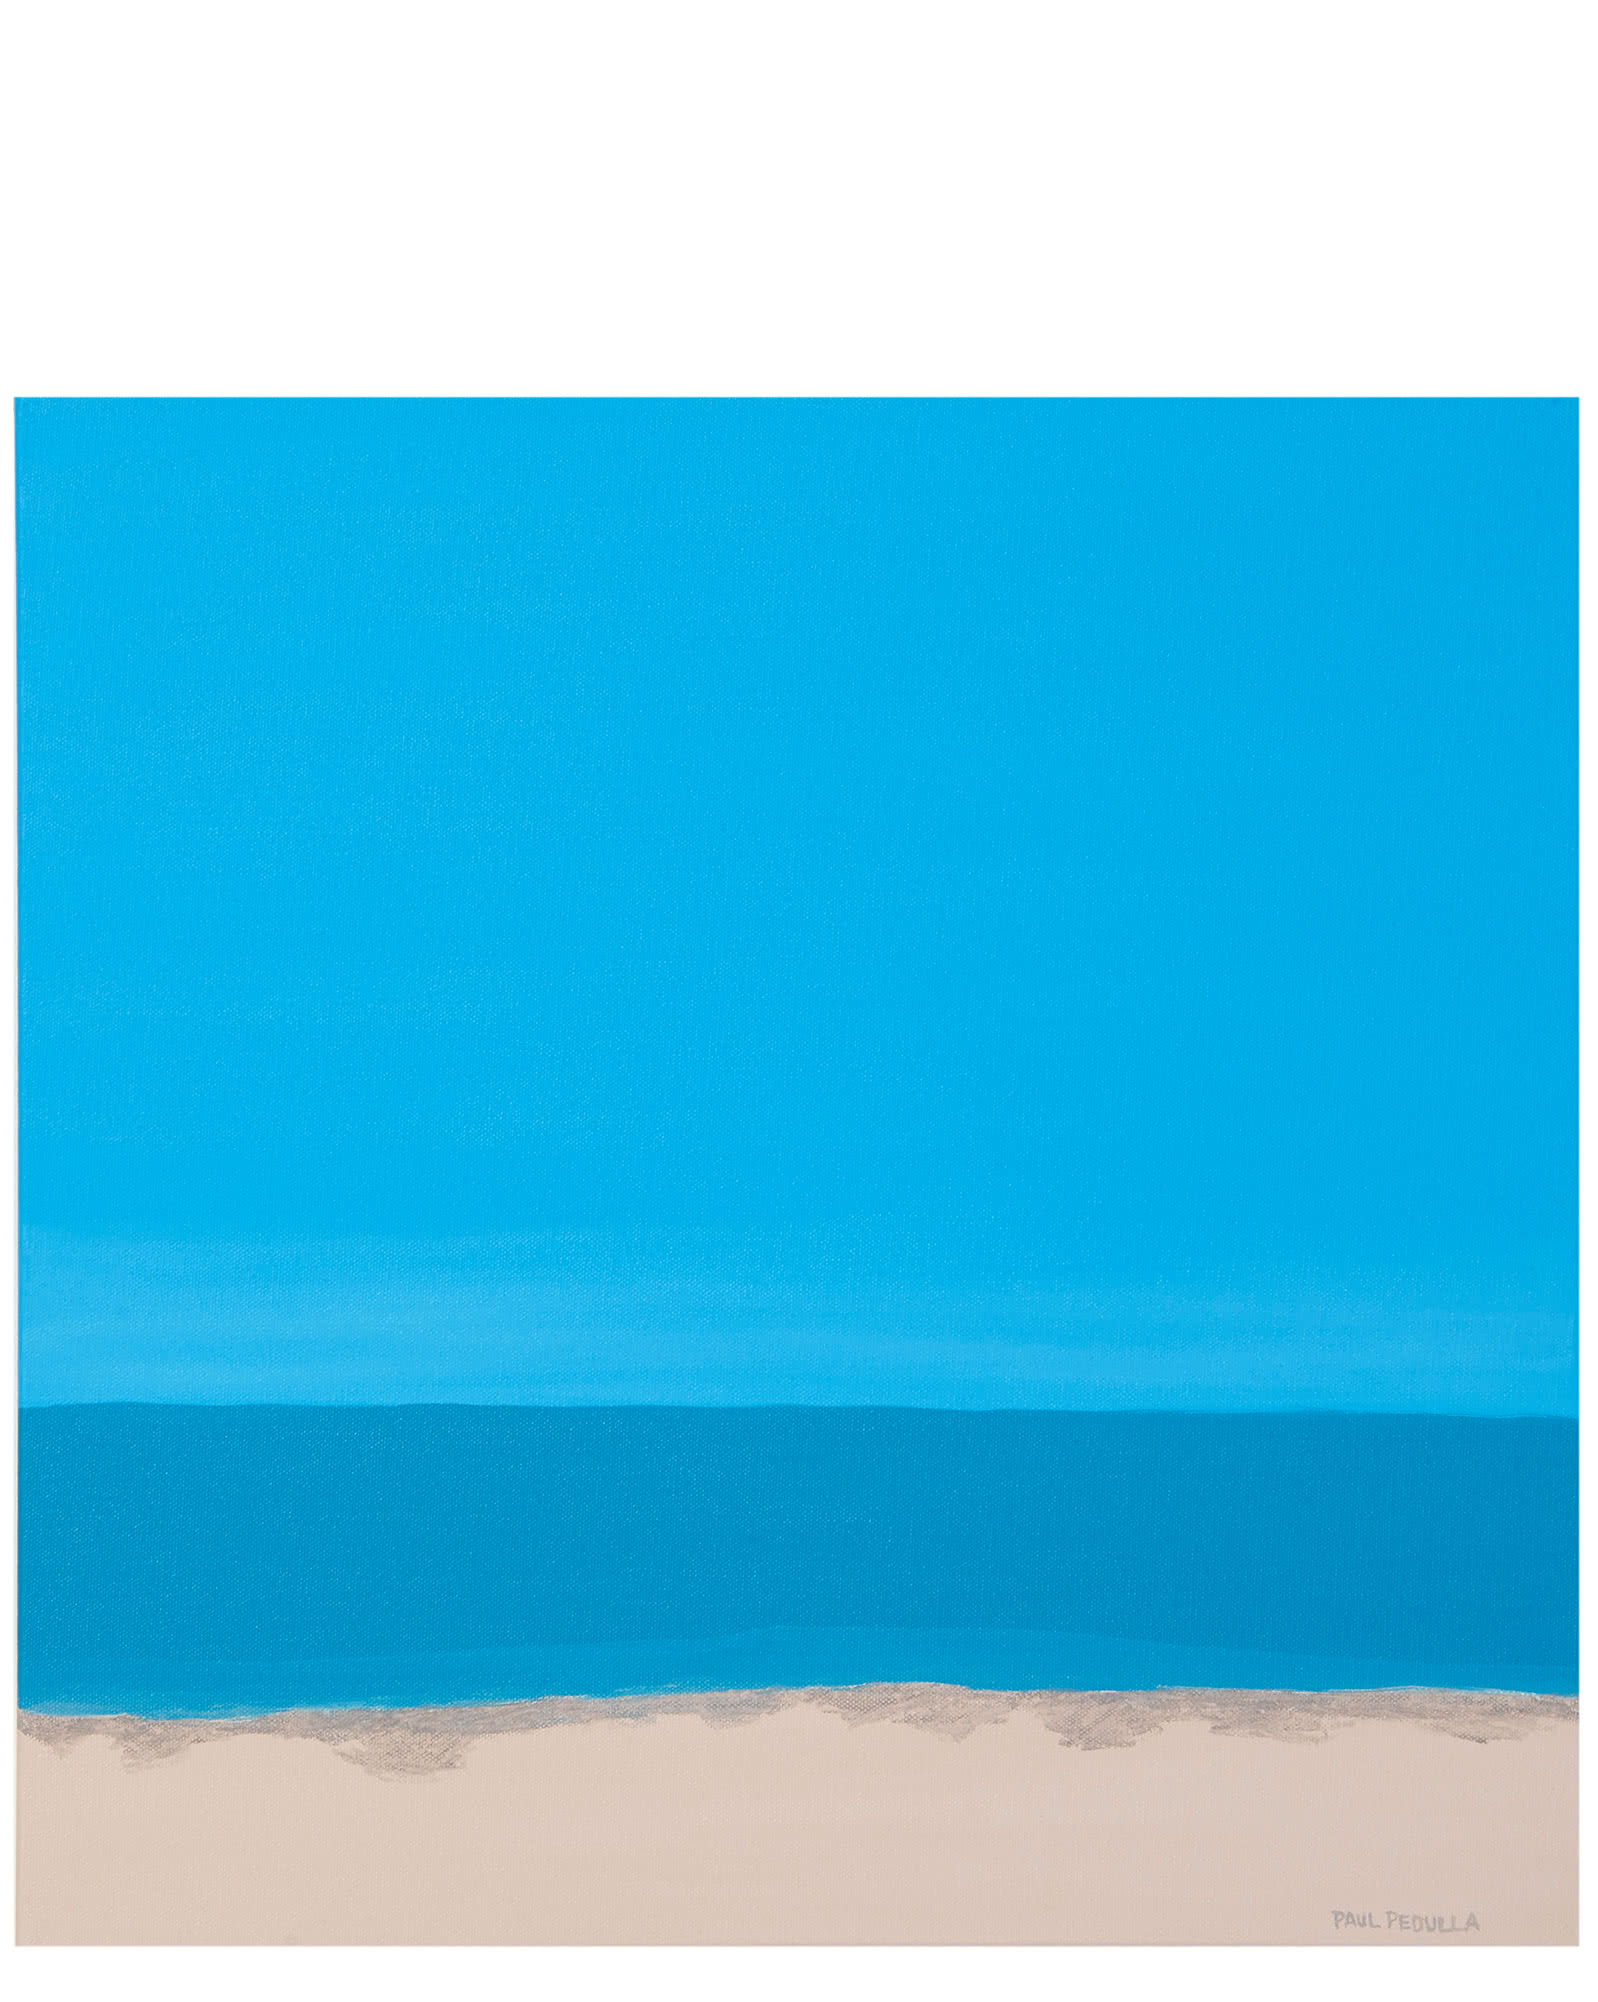 """""""Beach Untouched"""" by Paul Pedulla,"""